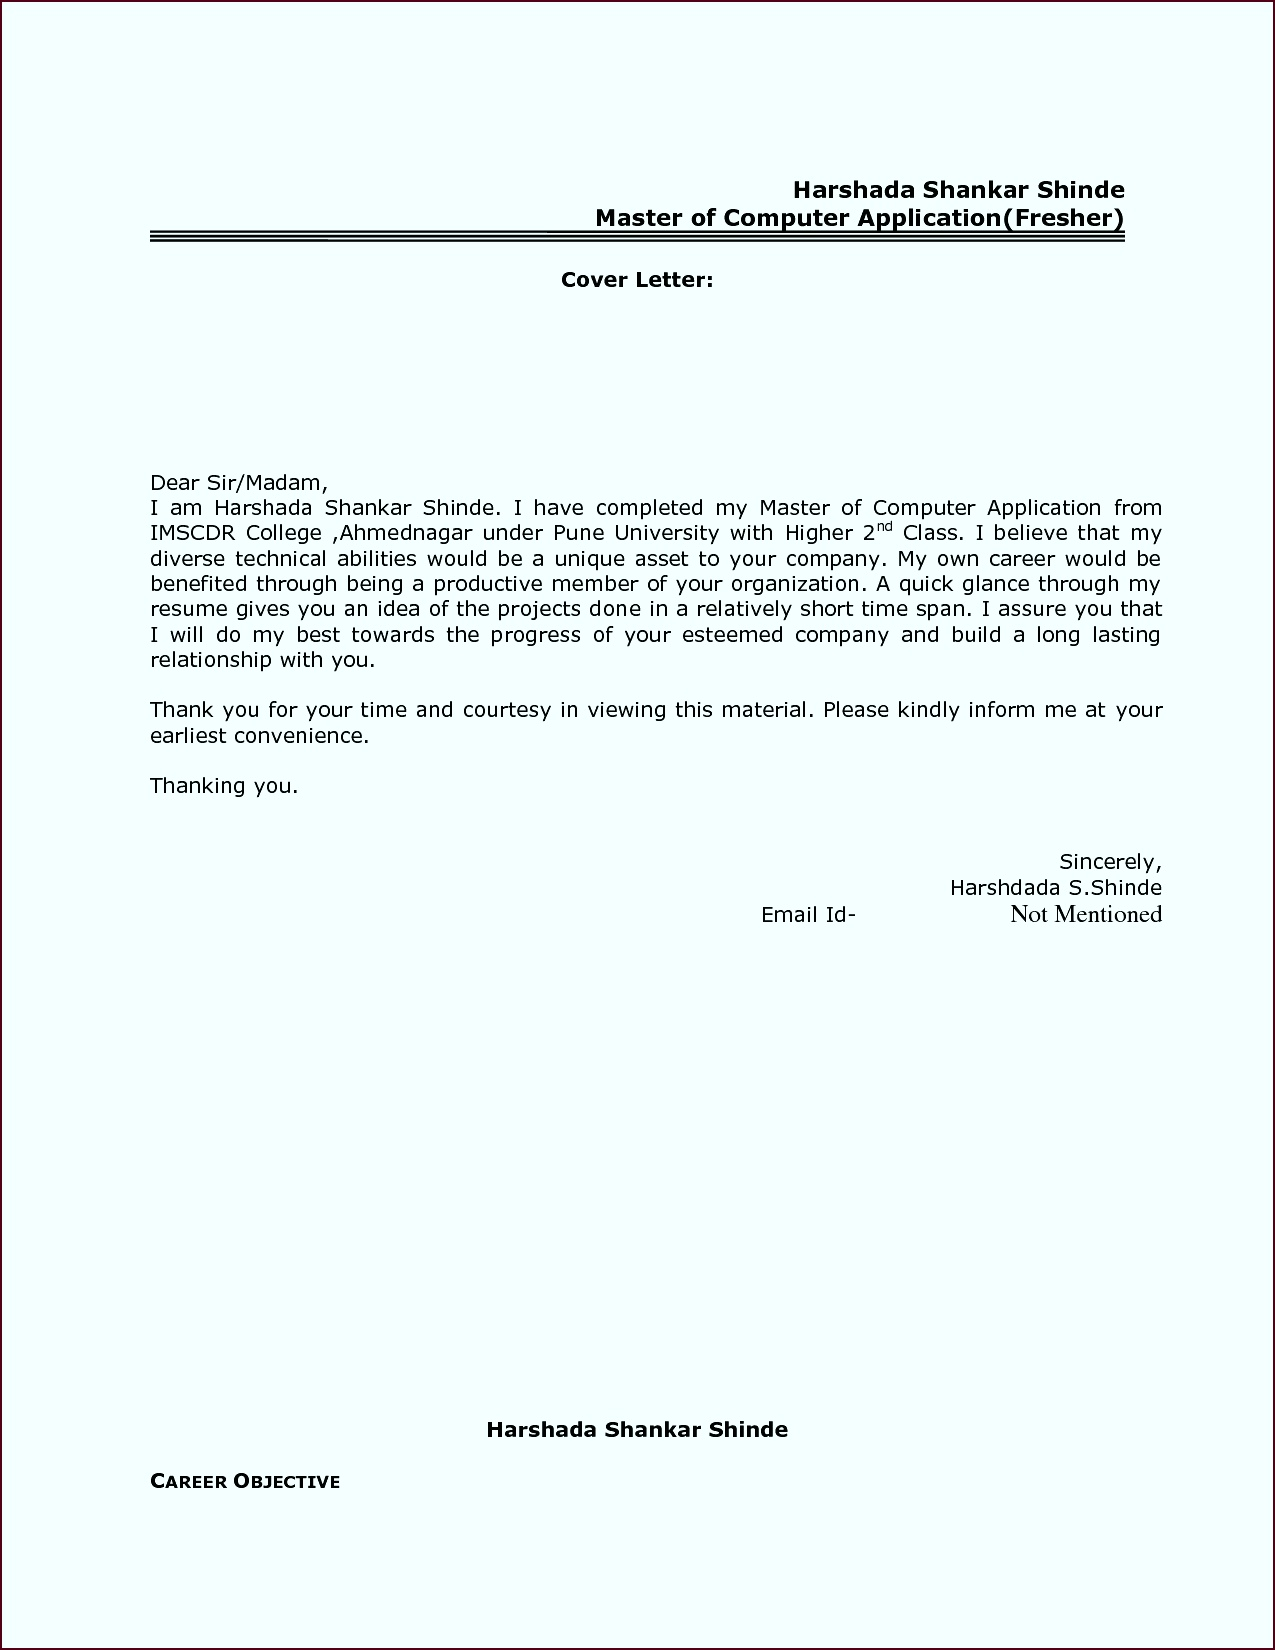 Best Resume Cover Letter Format For Freshers Govt JobCover Letter For Resume Cover Letter Examples iemuo